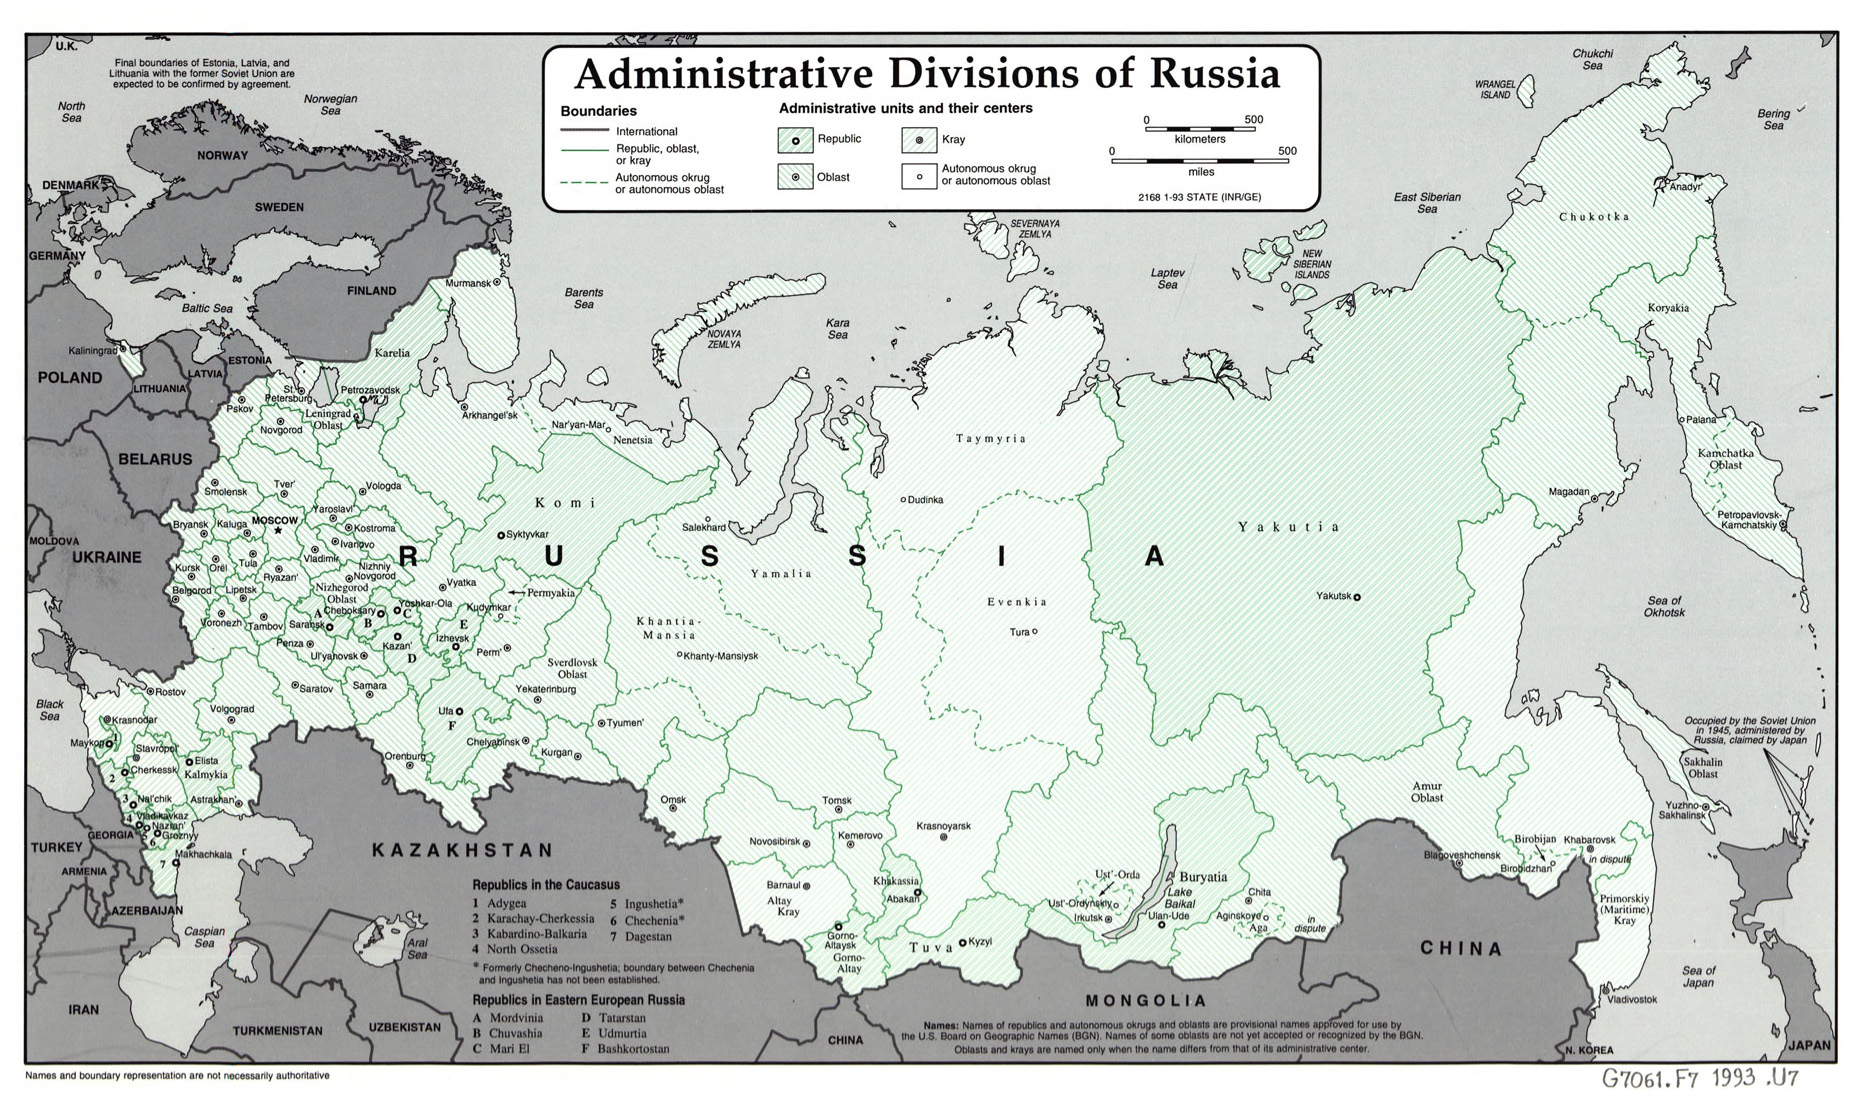 Large Administrative Divisions Map Of Russia Vidianicom - Russia administrative map